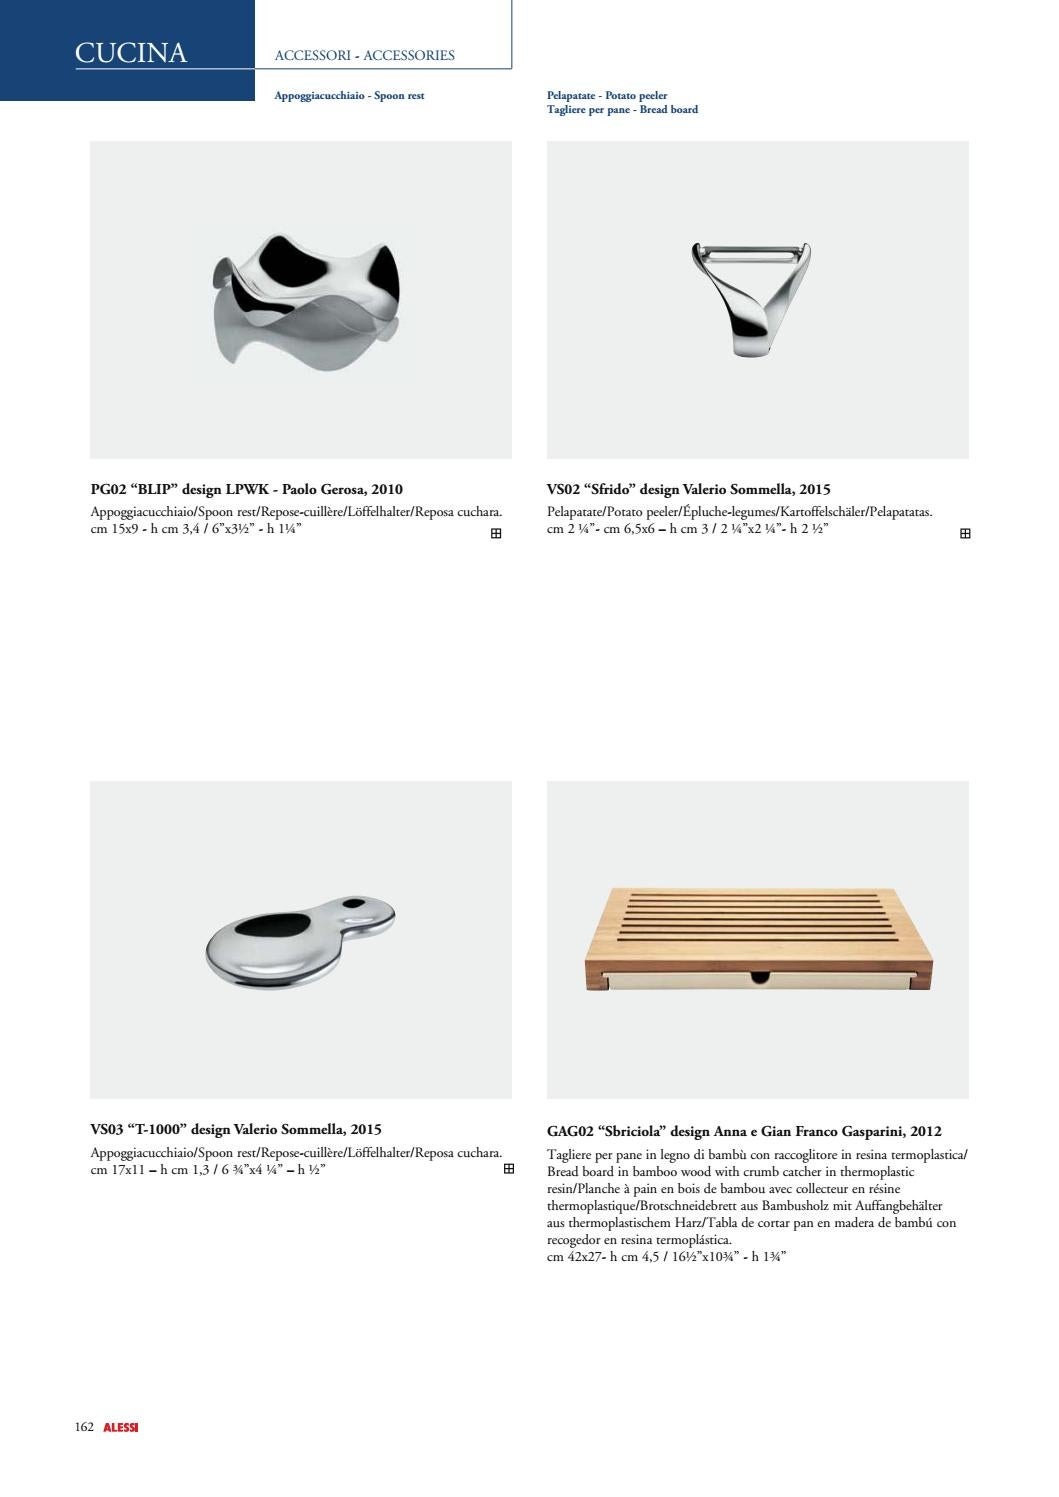 Cucina 4 X 4 alessi catalogue by alessi s.p.a. - issuu